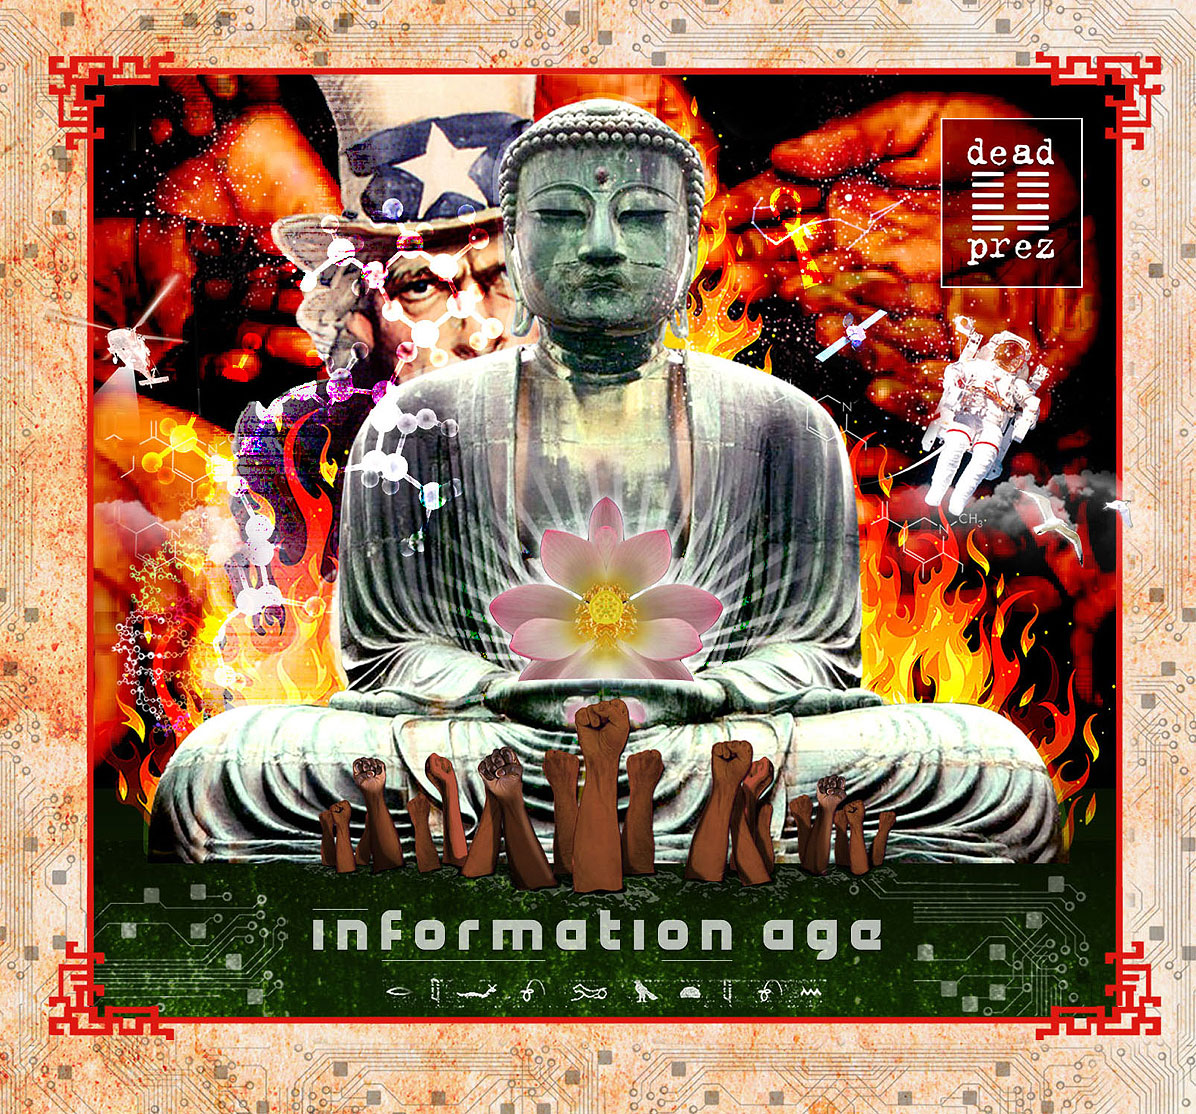 Dead Prez Information Age Album cover